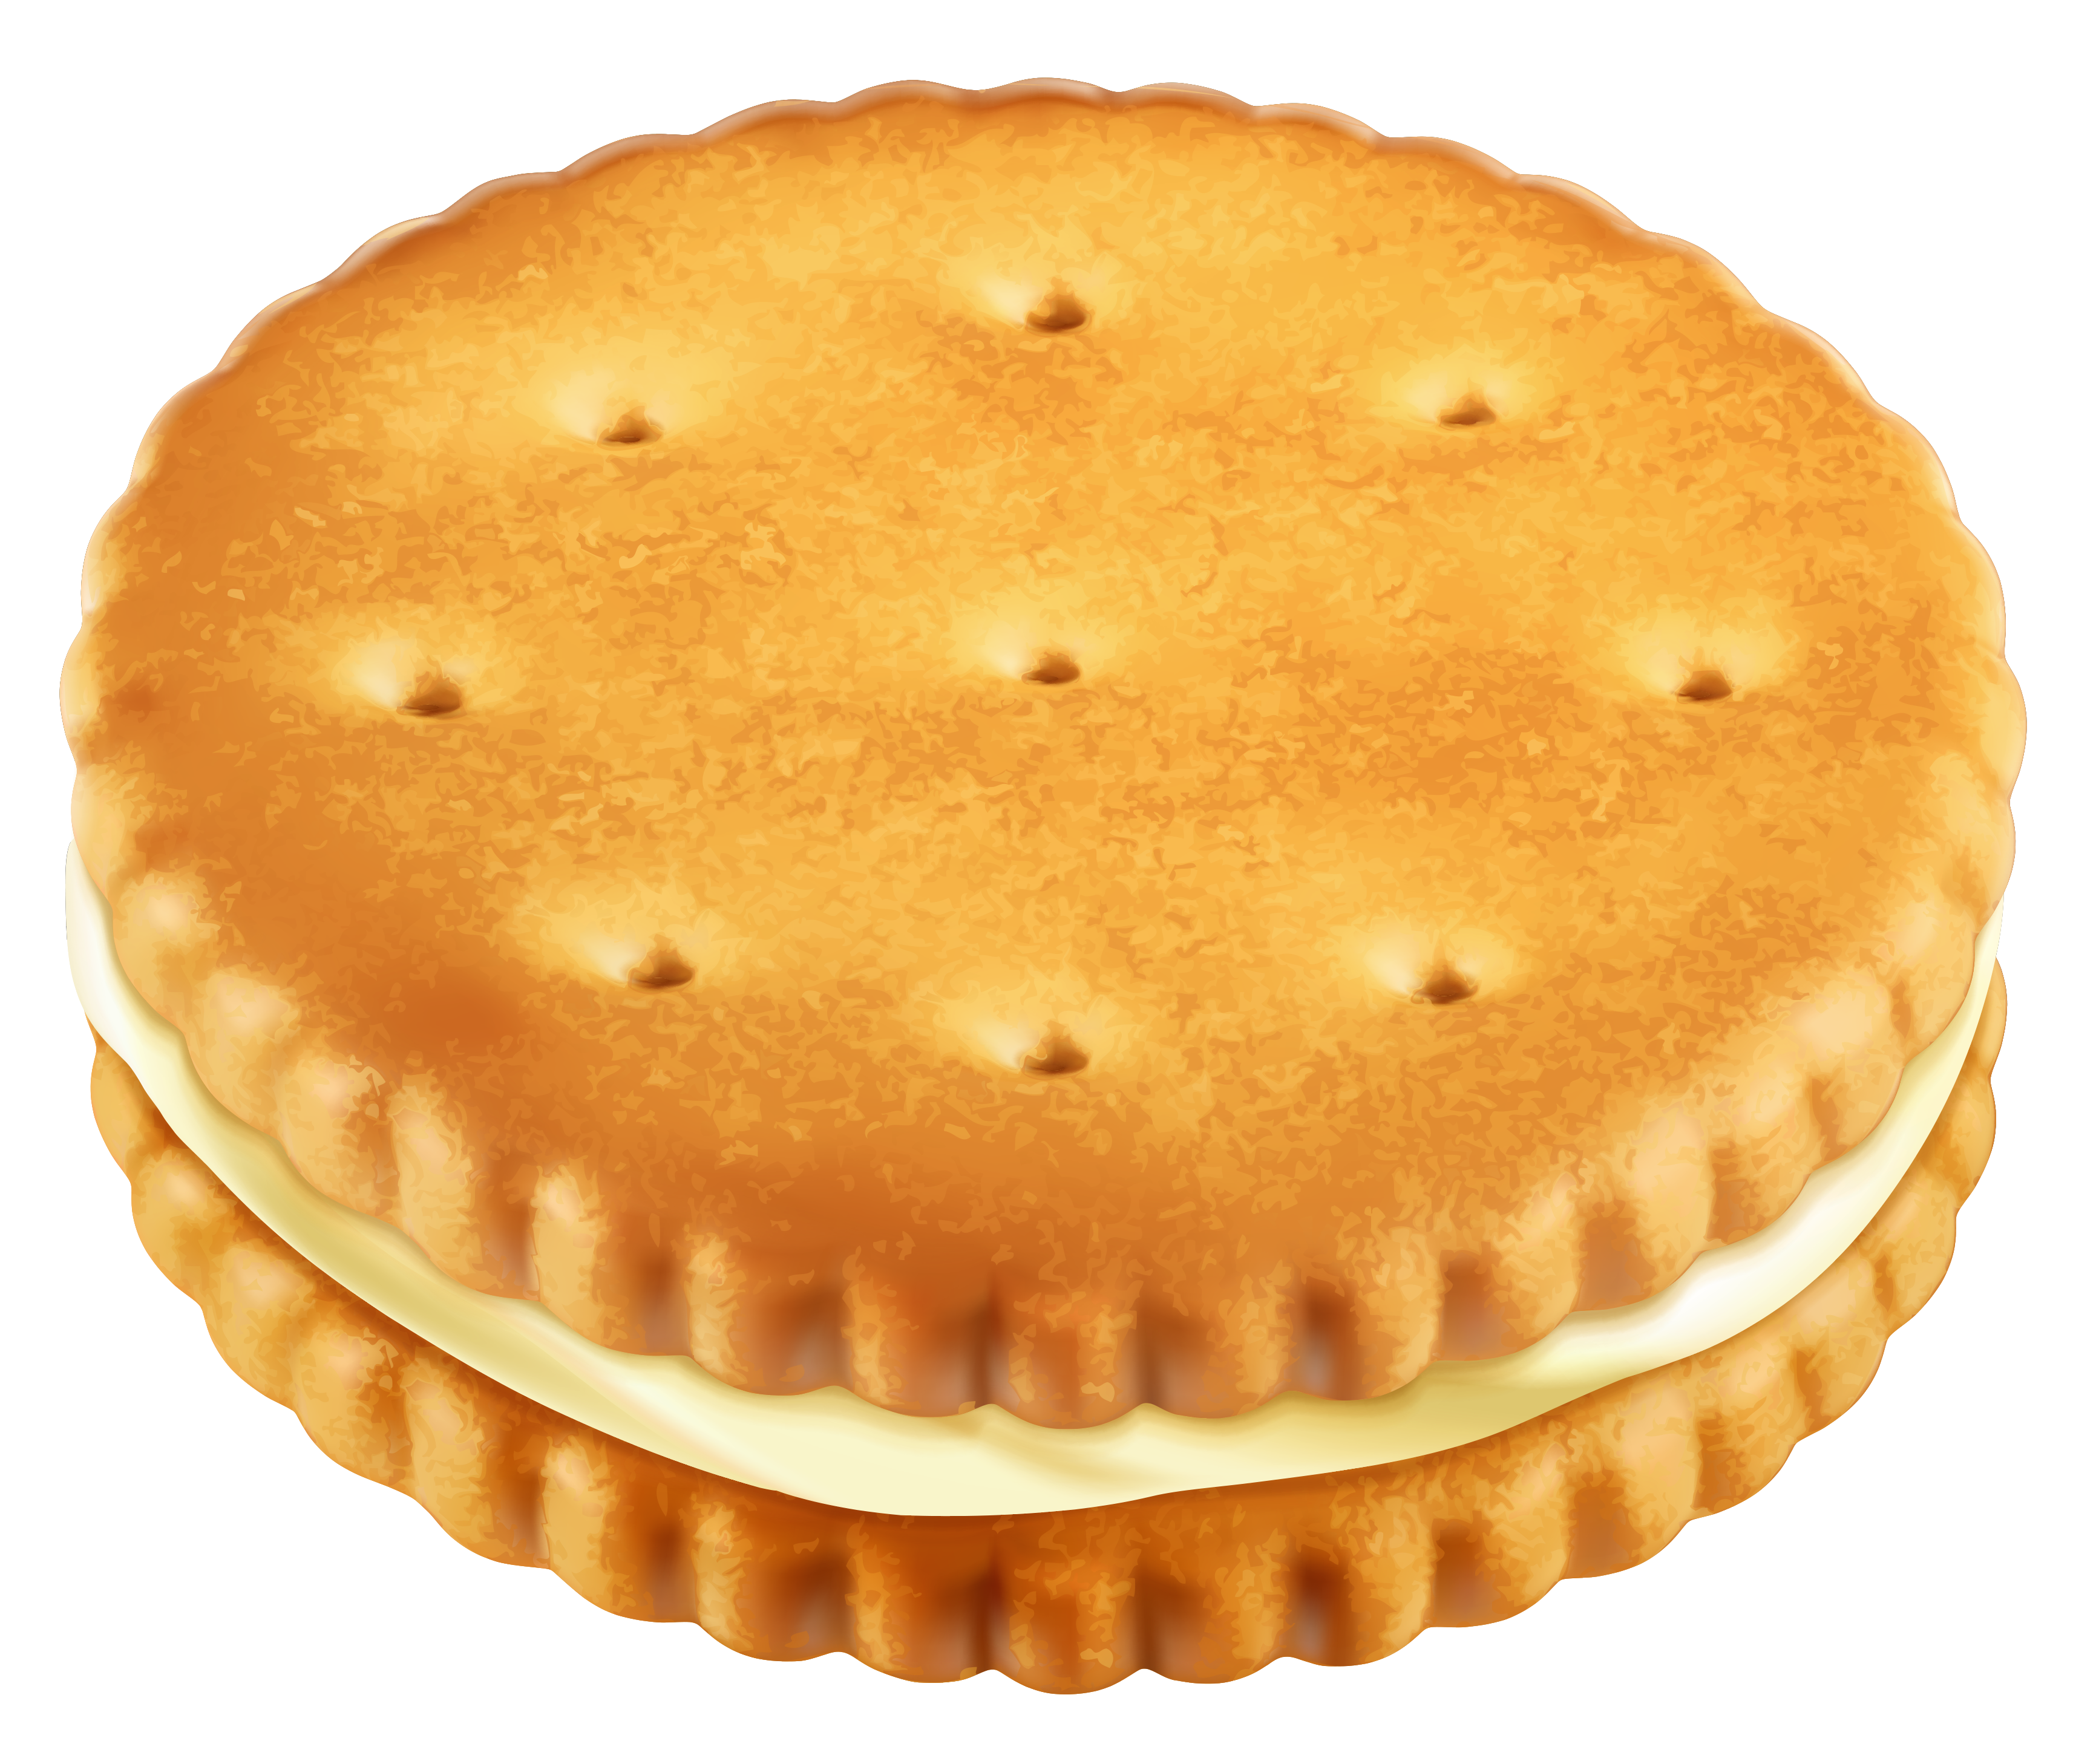 Food clipart cracker. Sandwich biscuit png picture